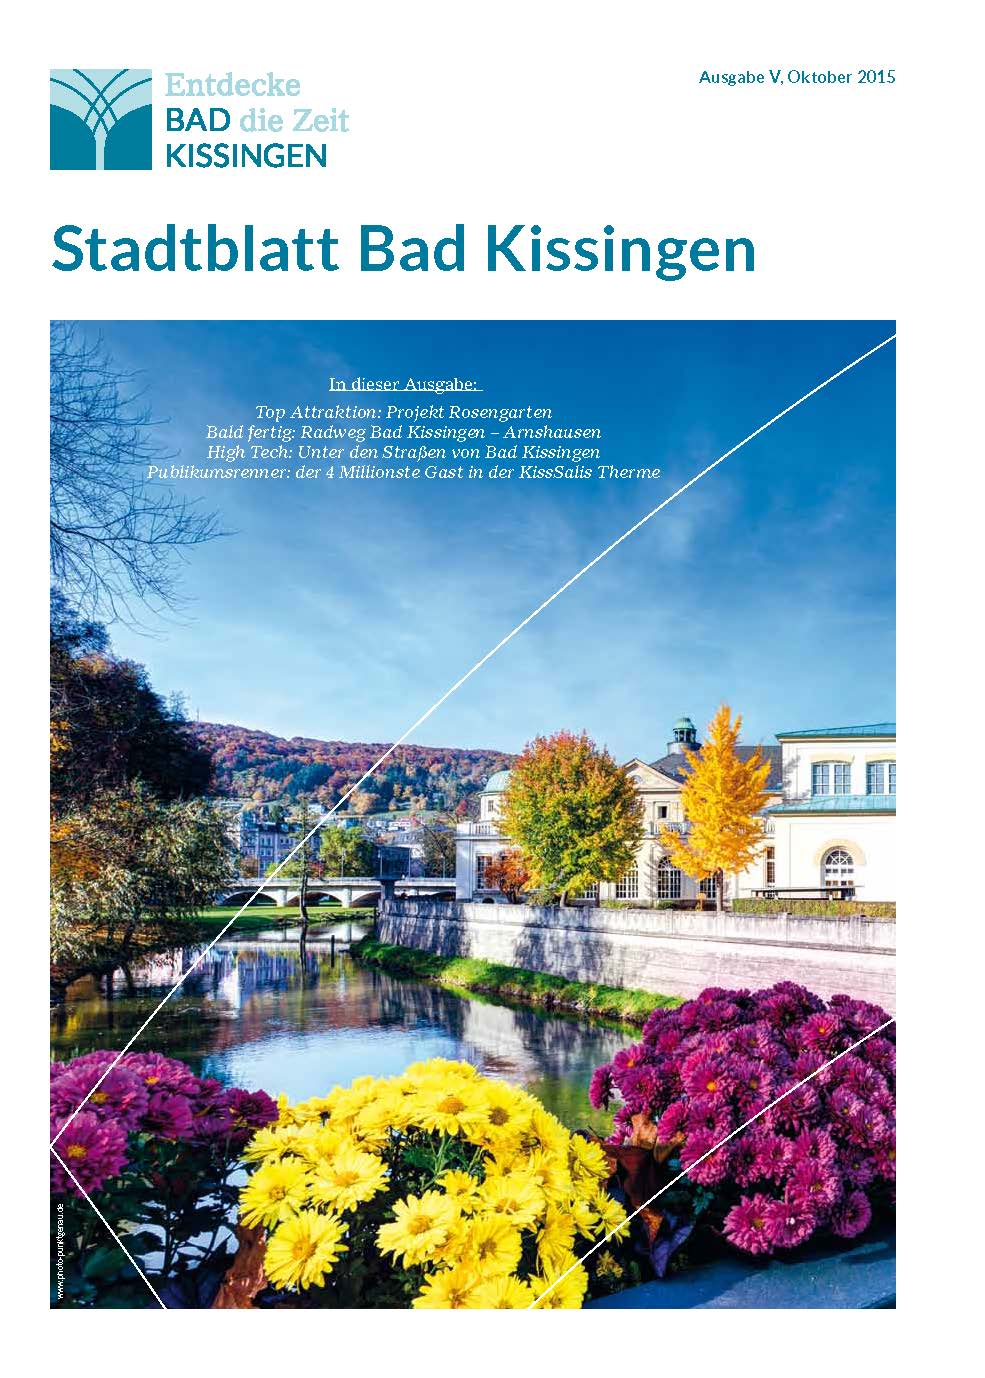 Deckblatt Stadtblatt Bad Kissingen Okt 2015